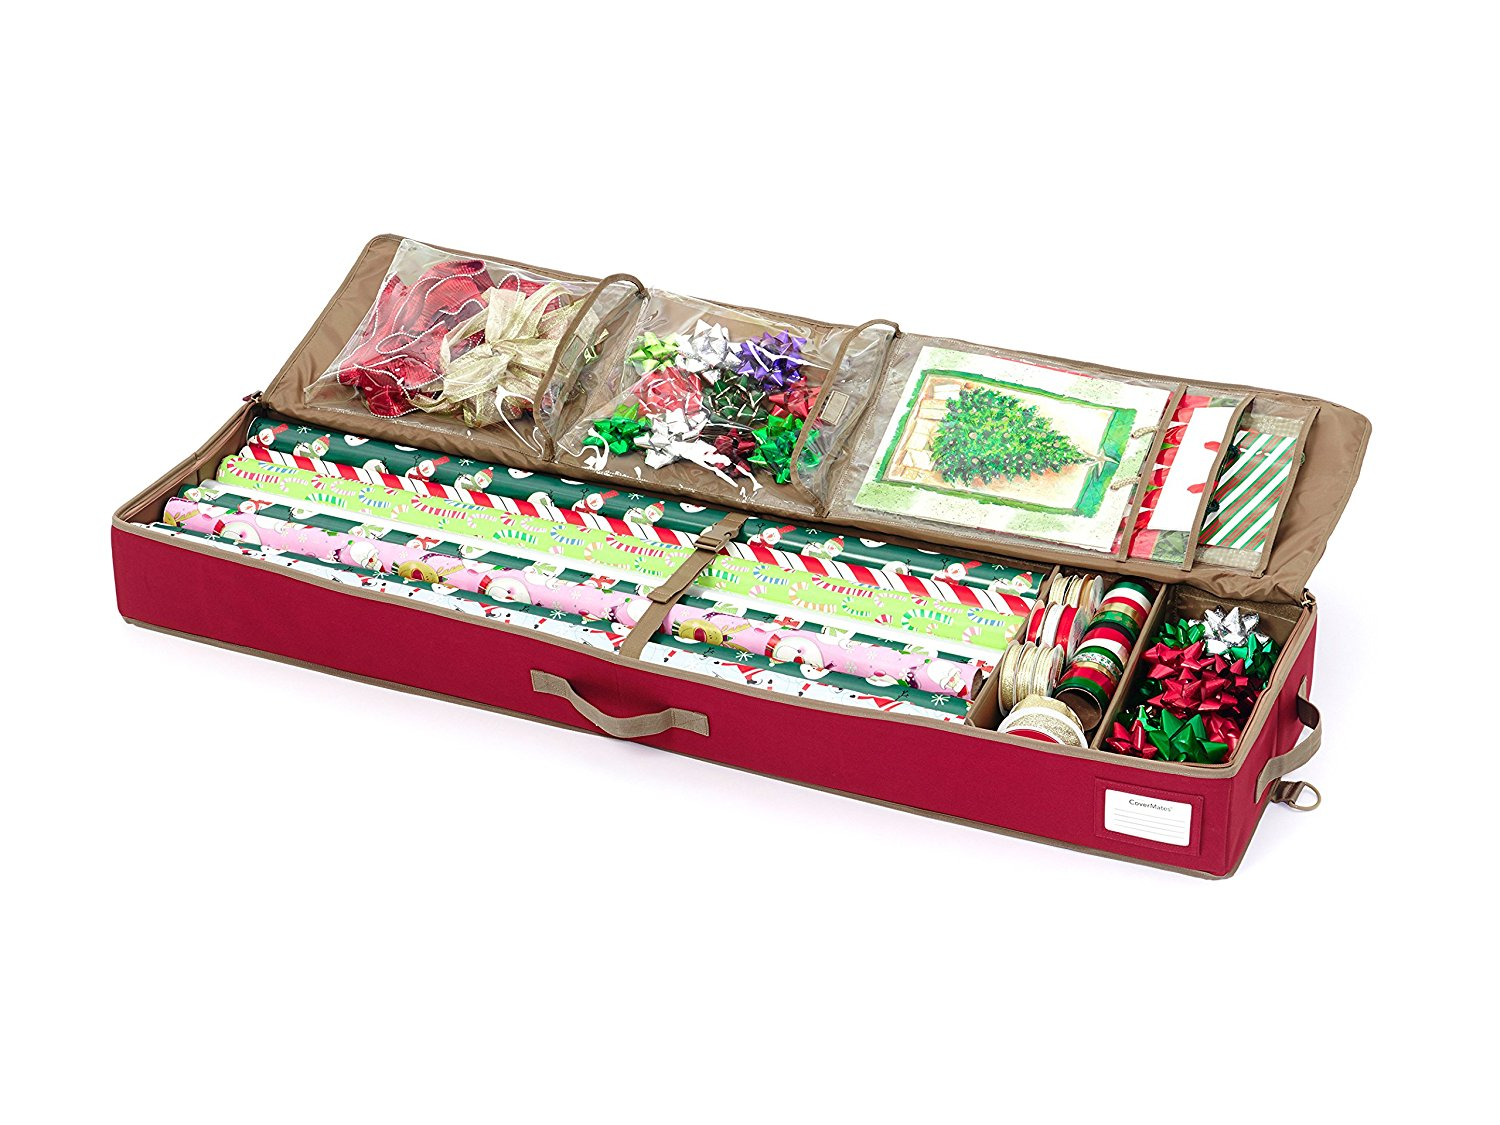 Cadeaupapier Opbergen Must Have Christmas Storage And Organization Ideas The